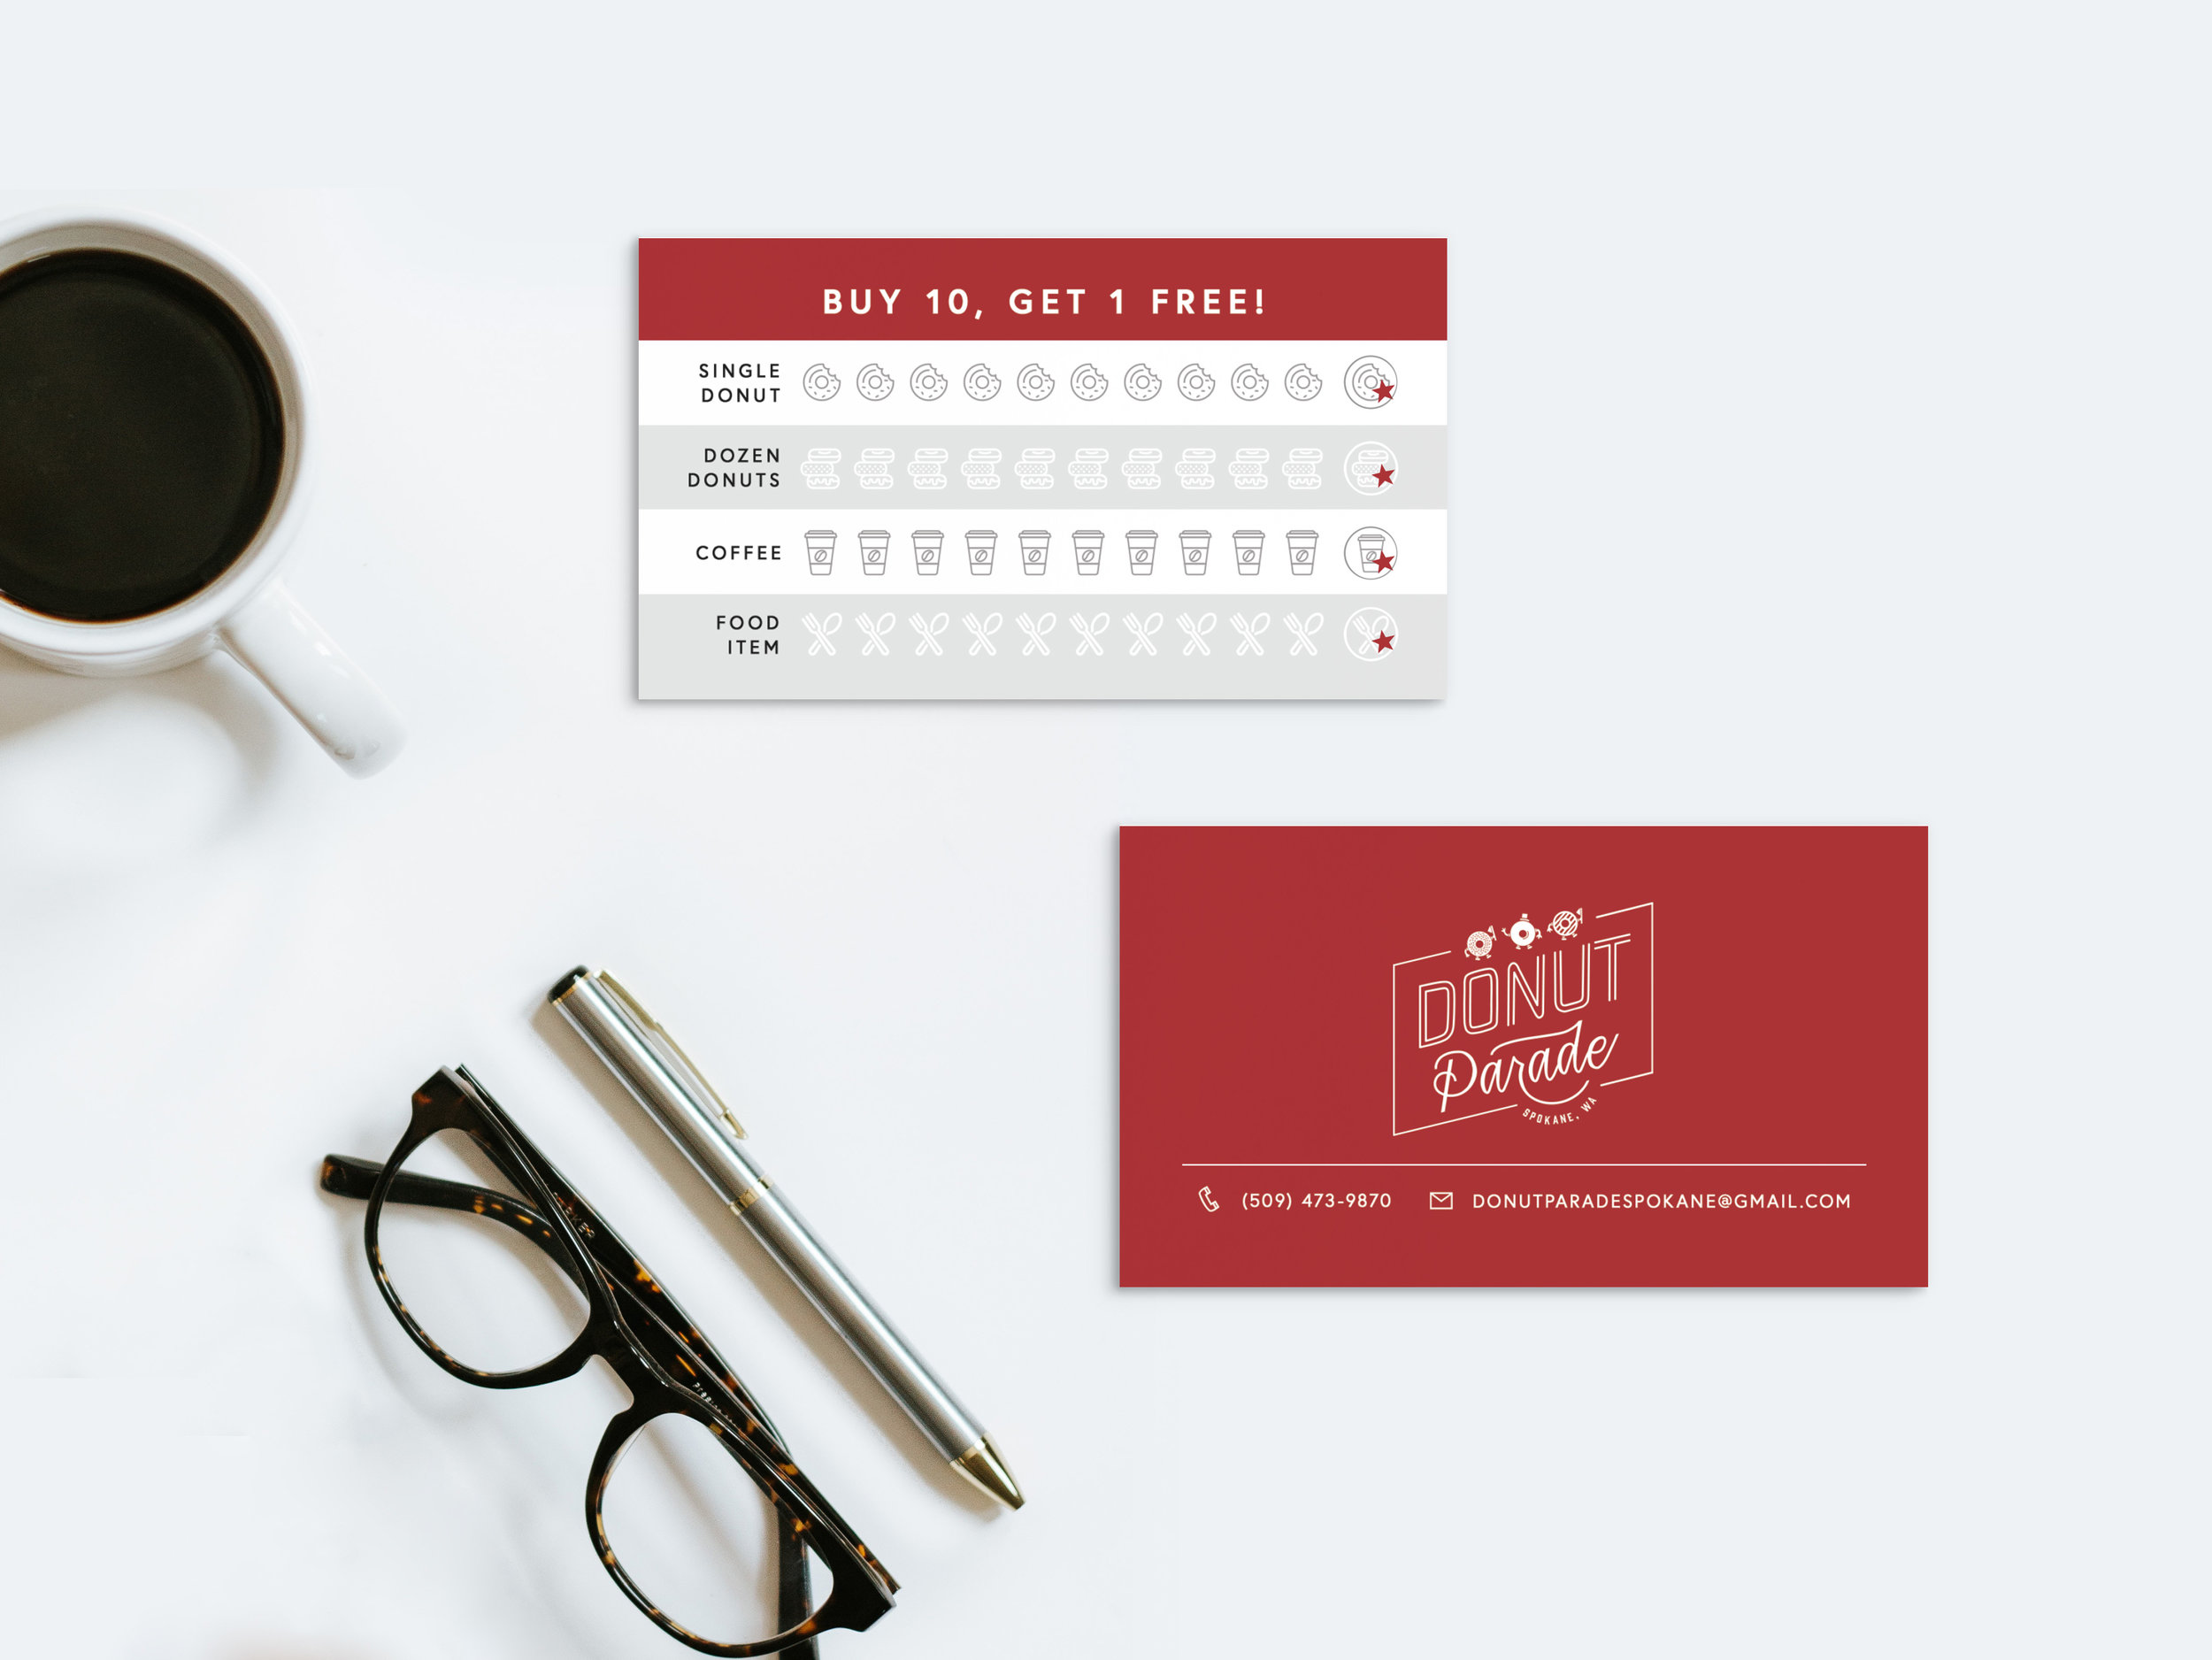 Punch cards (roughly the size of business cards) for Donut Parade—buy ten items, get one free!